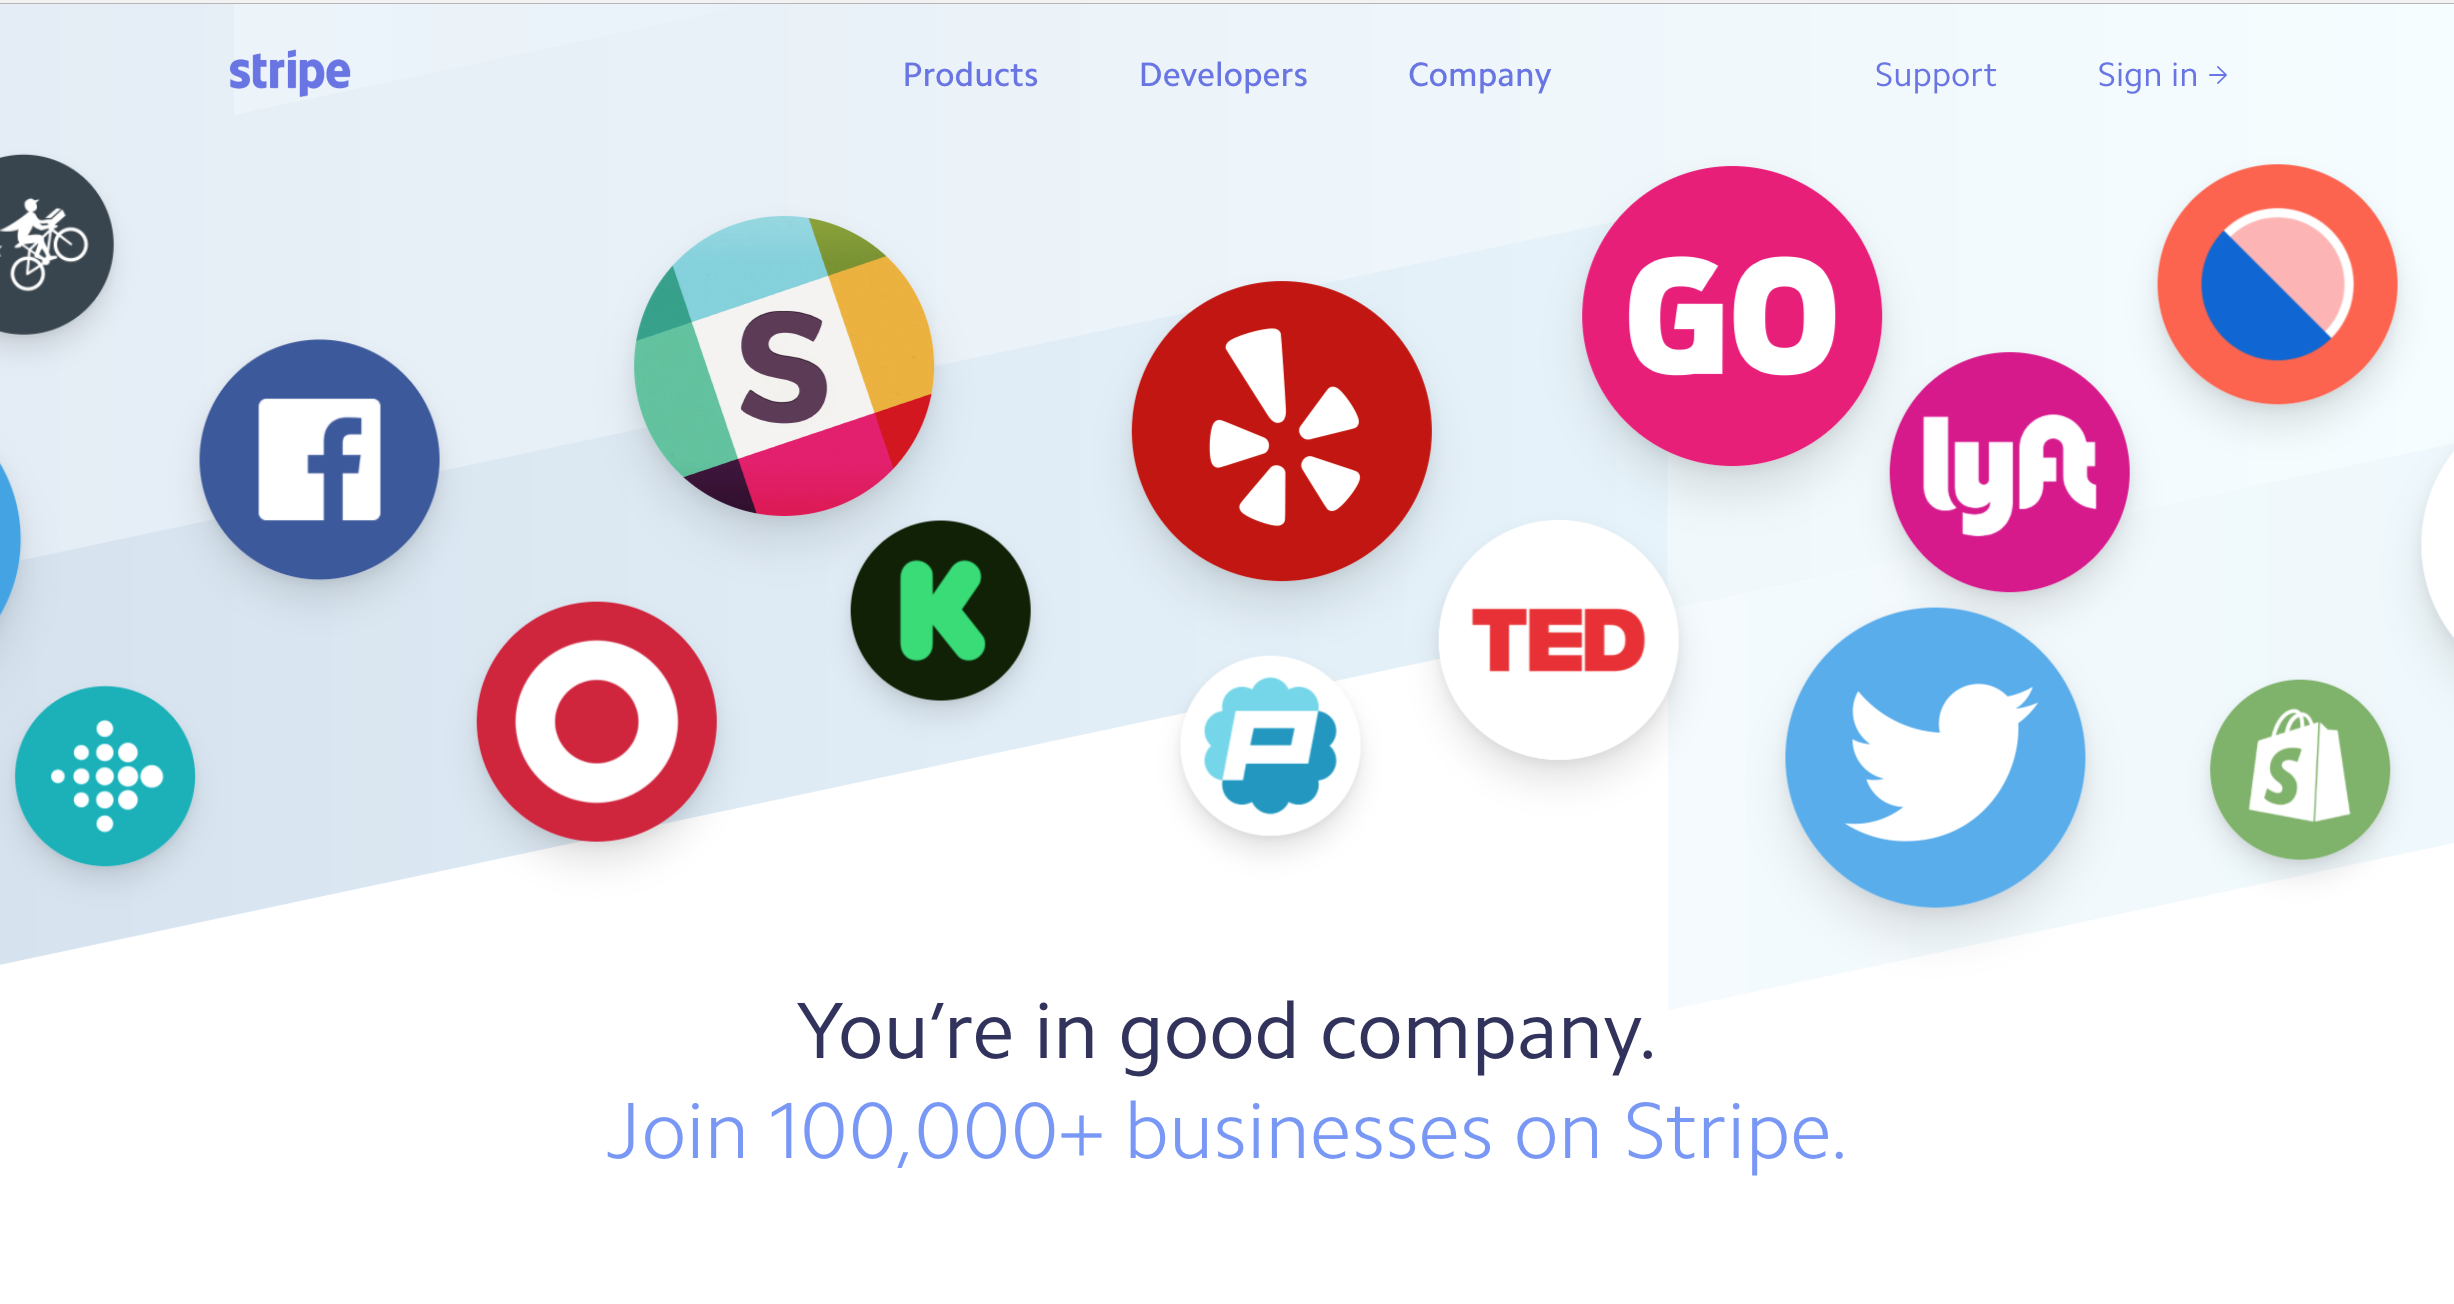 Stripe Founders Patrick Collison and John Collison Are Youngest Irish Billionaires – A Payment Startup Stripe Valued at $9 Billion in New Funding